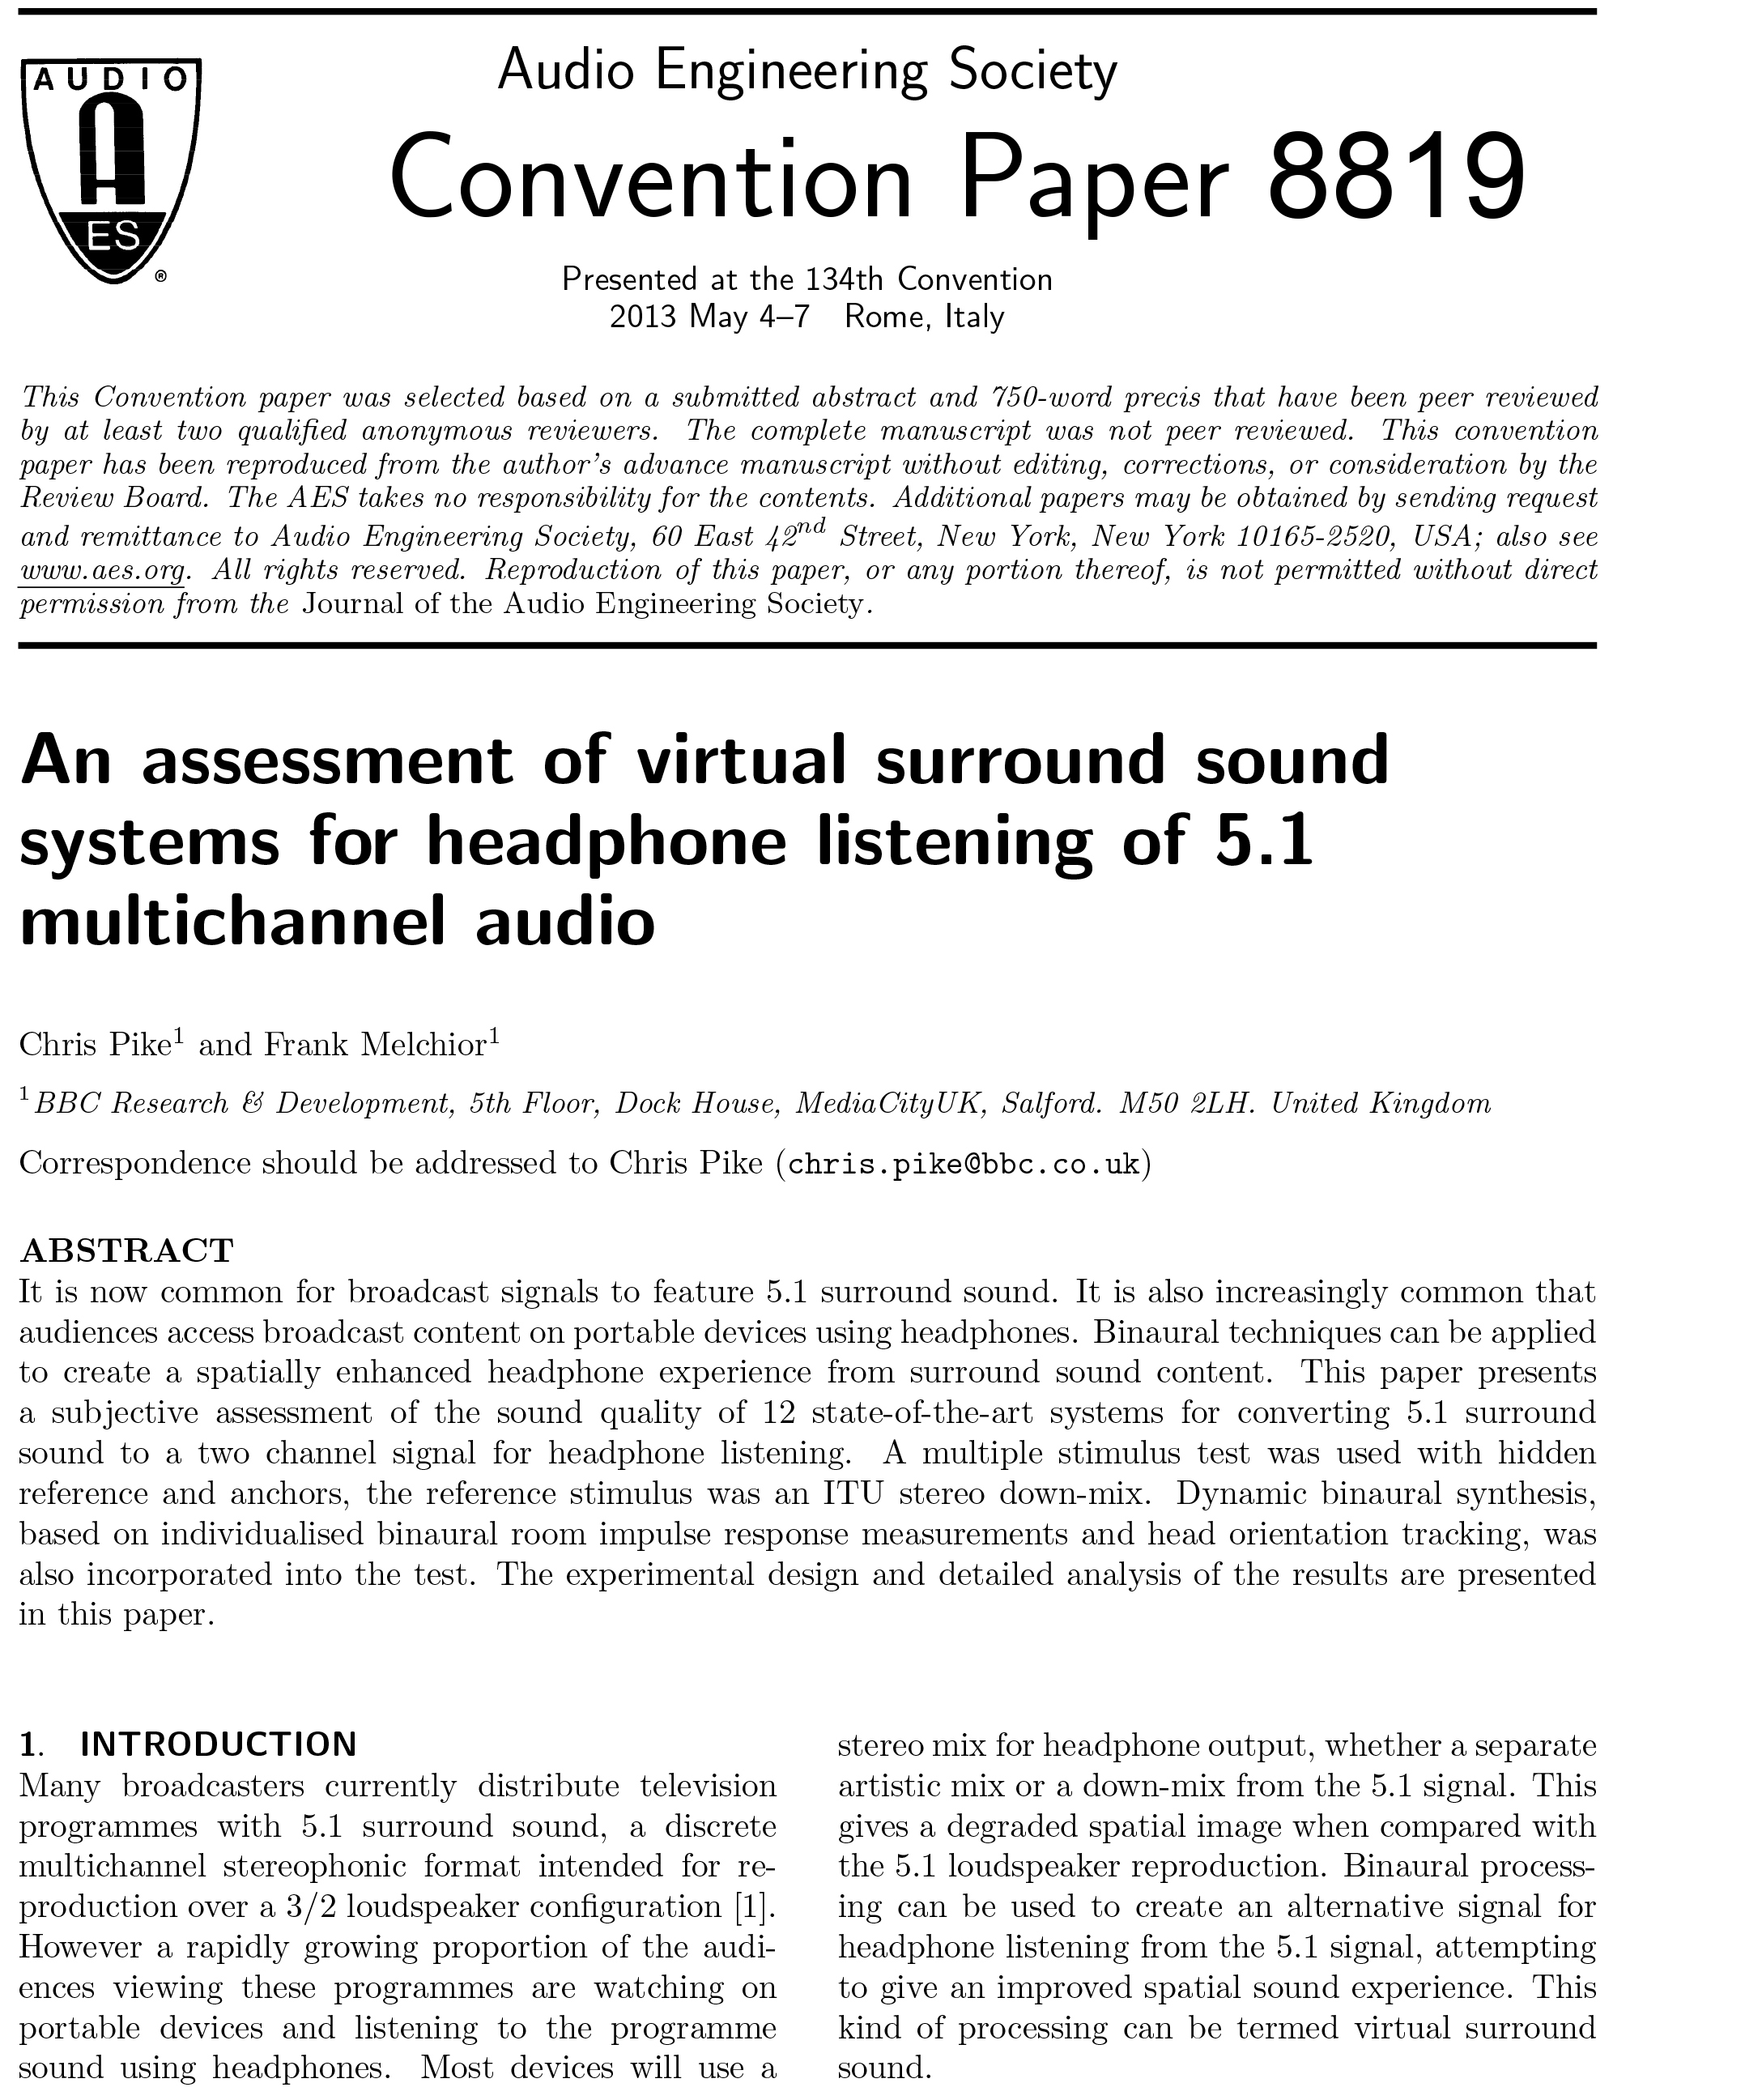 Aes E Library An Assessment Of Virtual Surround Sound Systems For Multi Channel Headphone Listening 51 Multichannel Audio